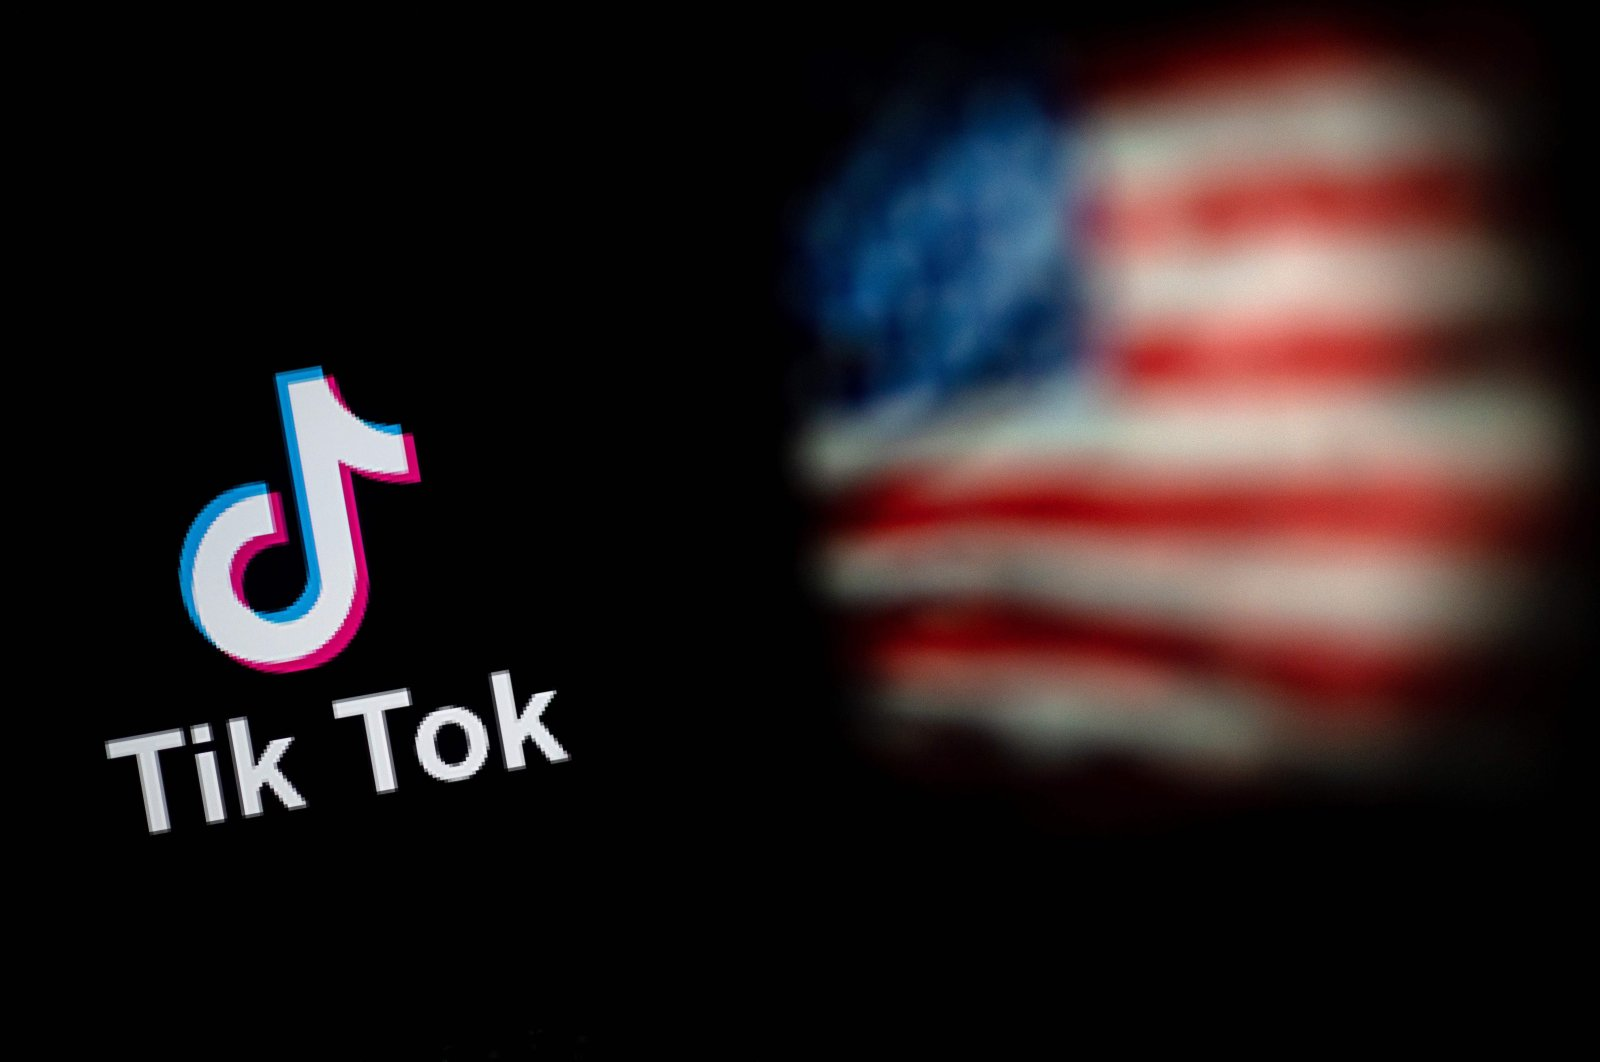 The logo of the social network application TikTok (L) and a U.S. flag seen on the screens of two laptops in Beijing, Sept. 14, 2020. (AFP Photo)